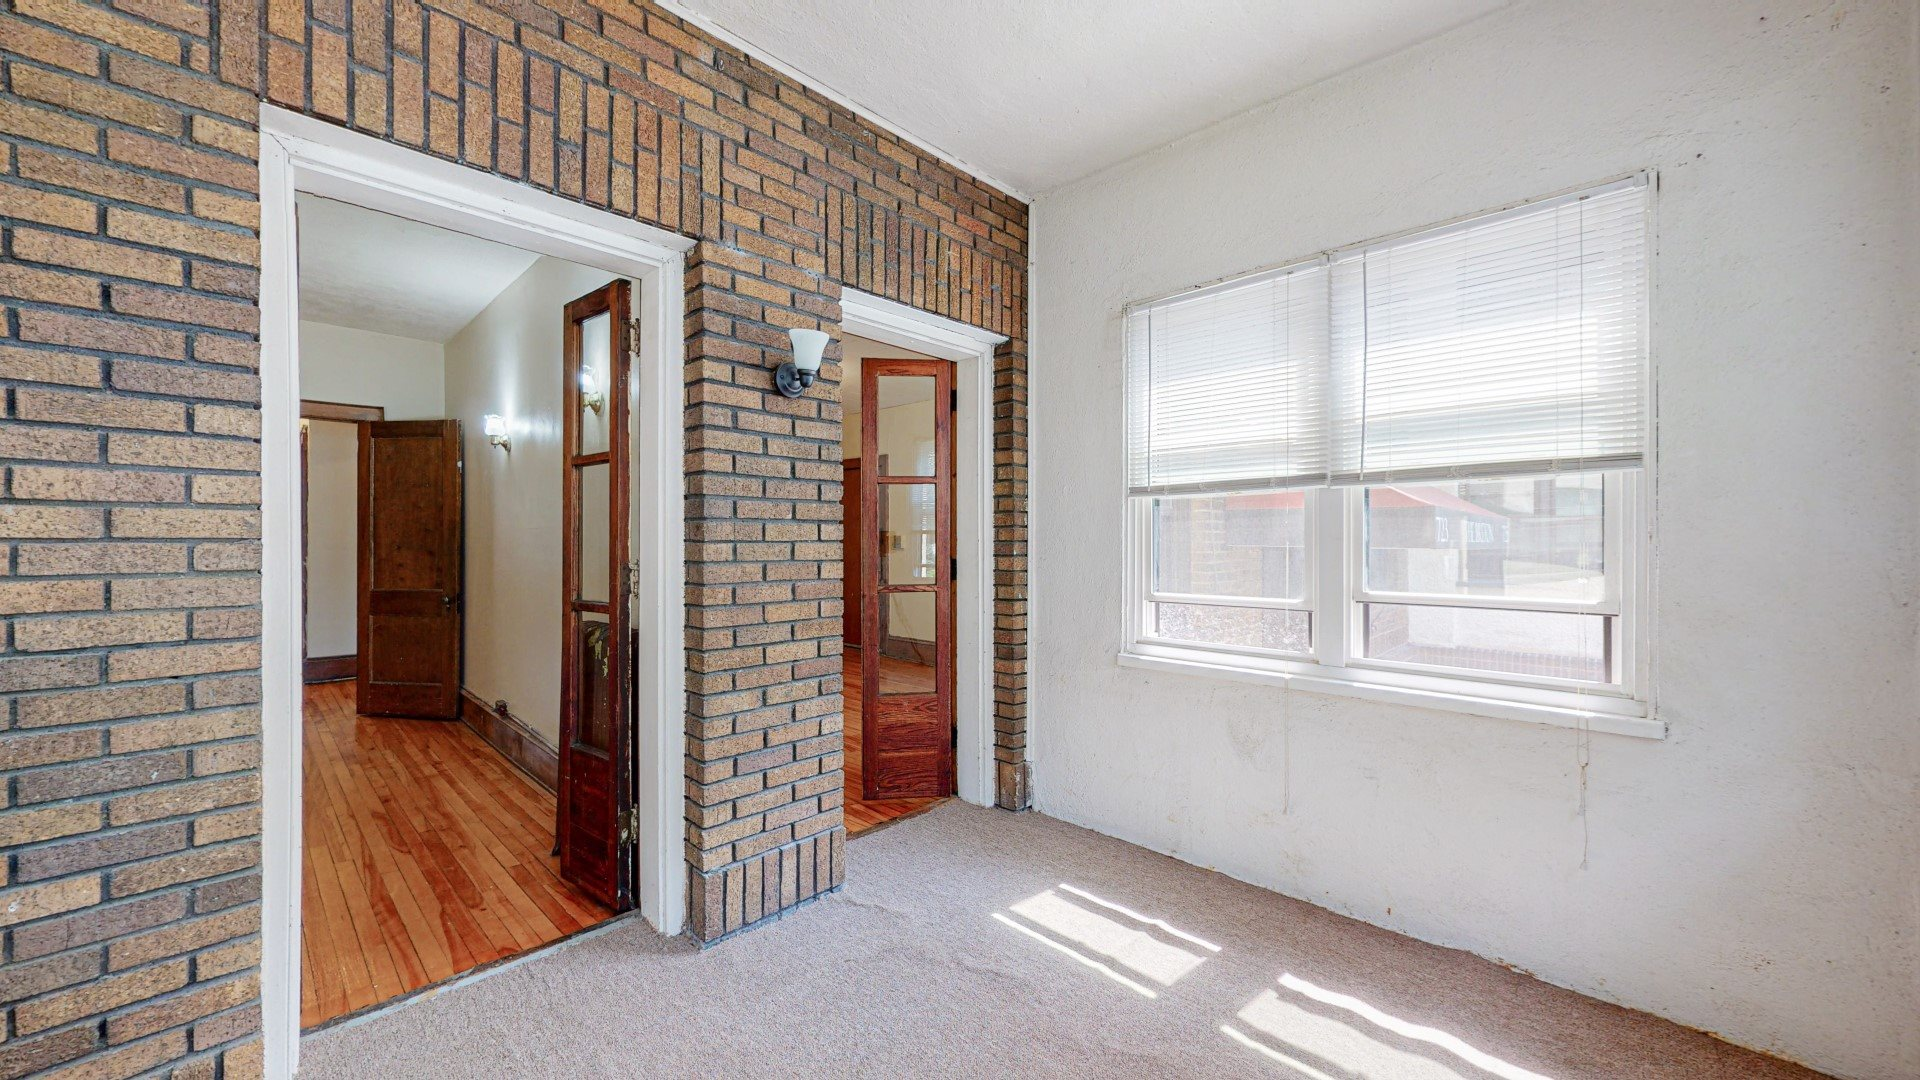 Sibley_3br_porch with exposed brick